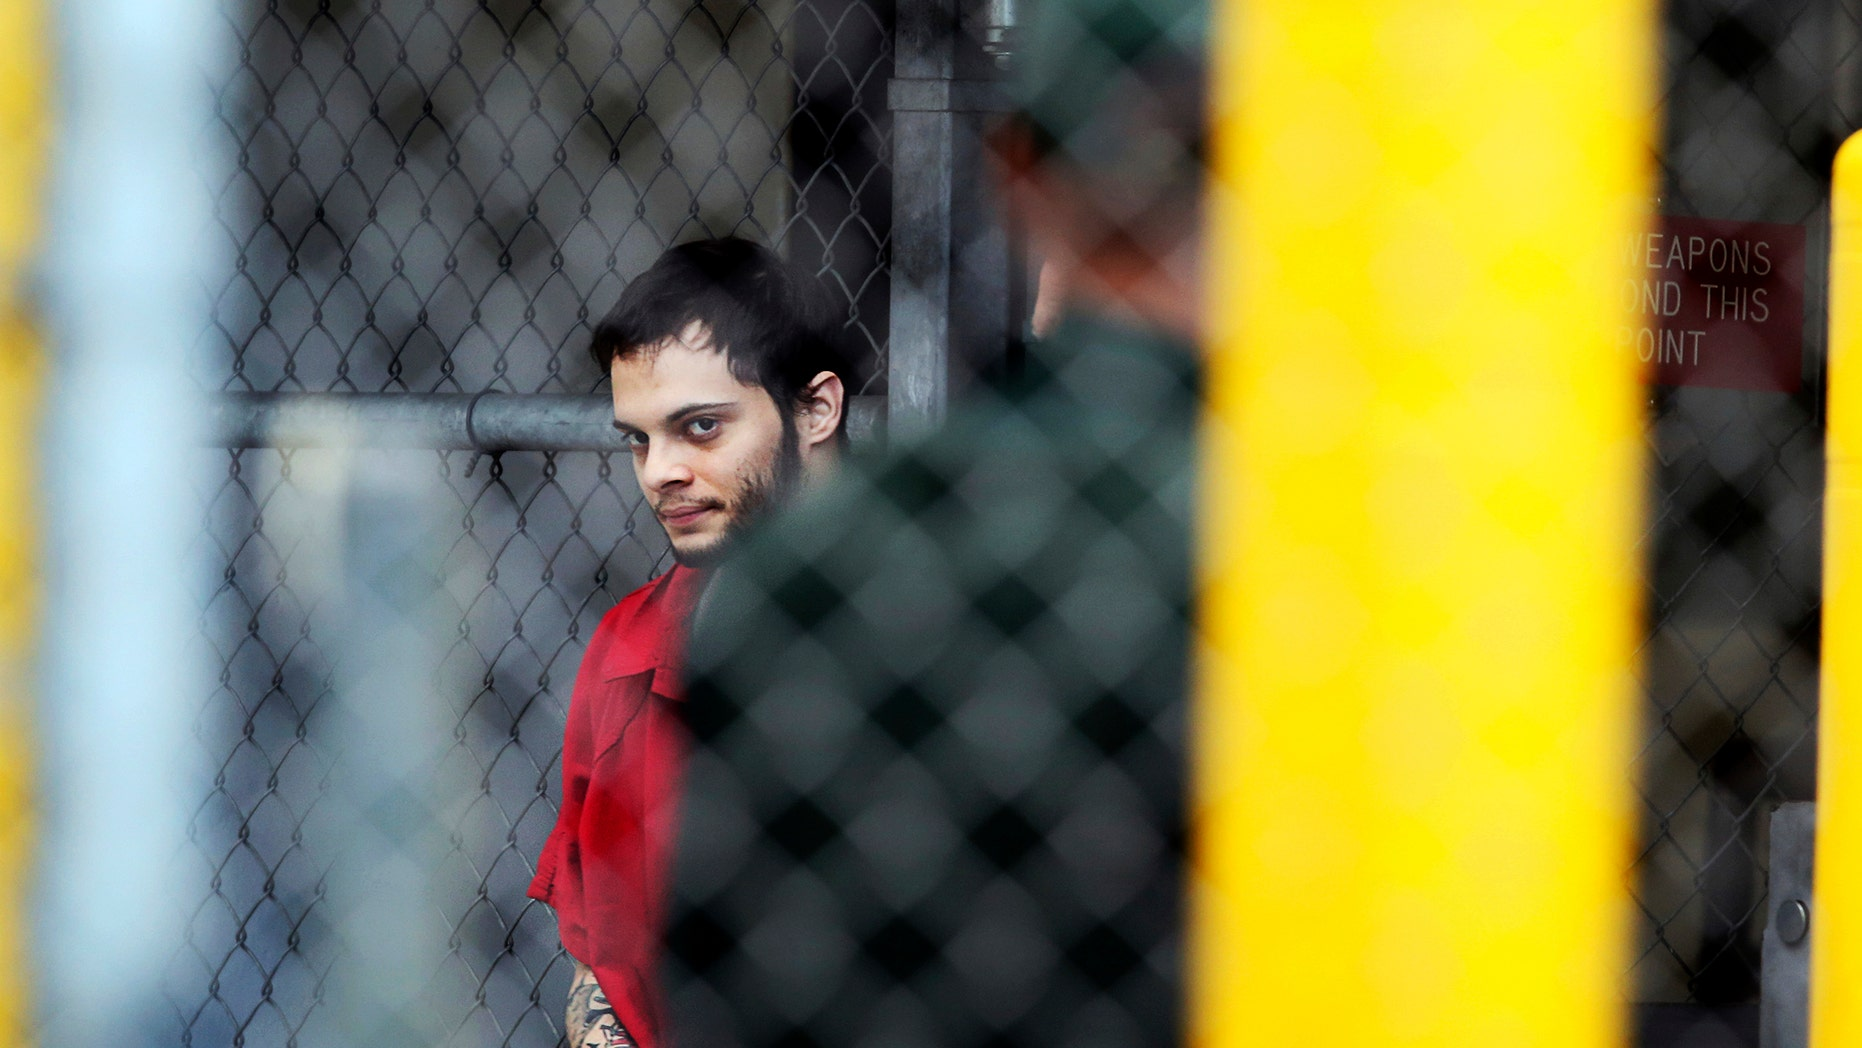 Esteban Santiago outside the Broward County jail in Fort Lauderdale, Fla., Jan. 9, 2017.